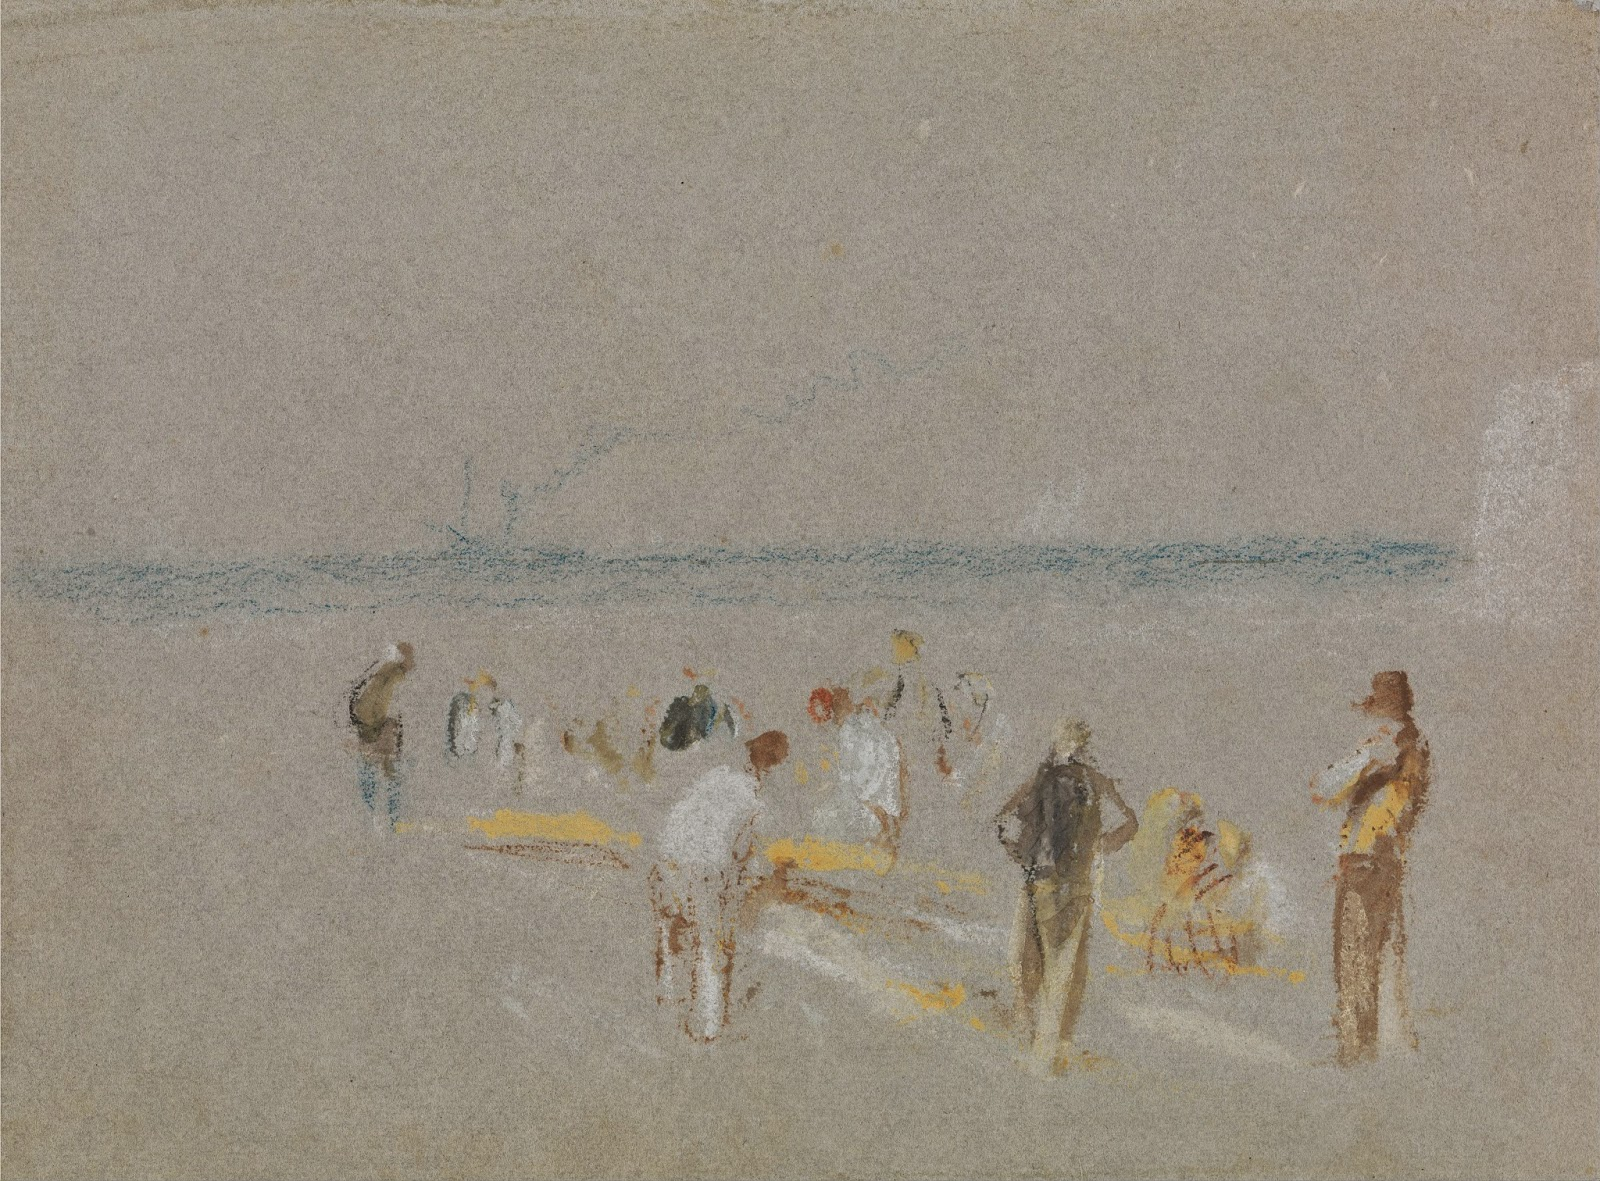 Cricket on the Goodwin Sands by J.M.W Turner c. 1828-30